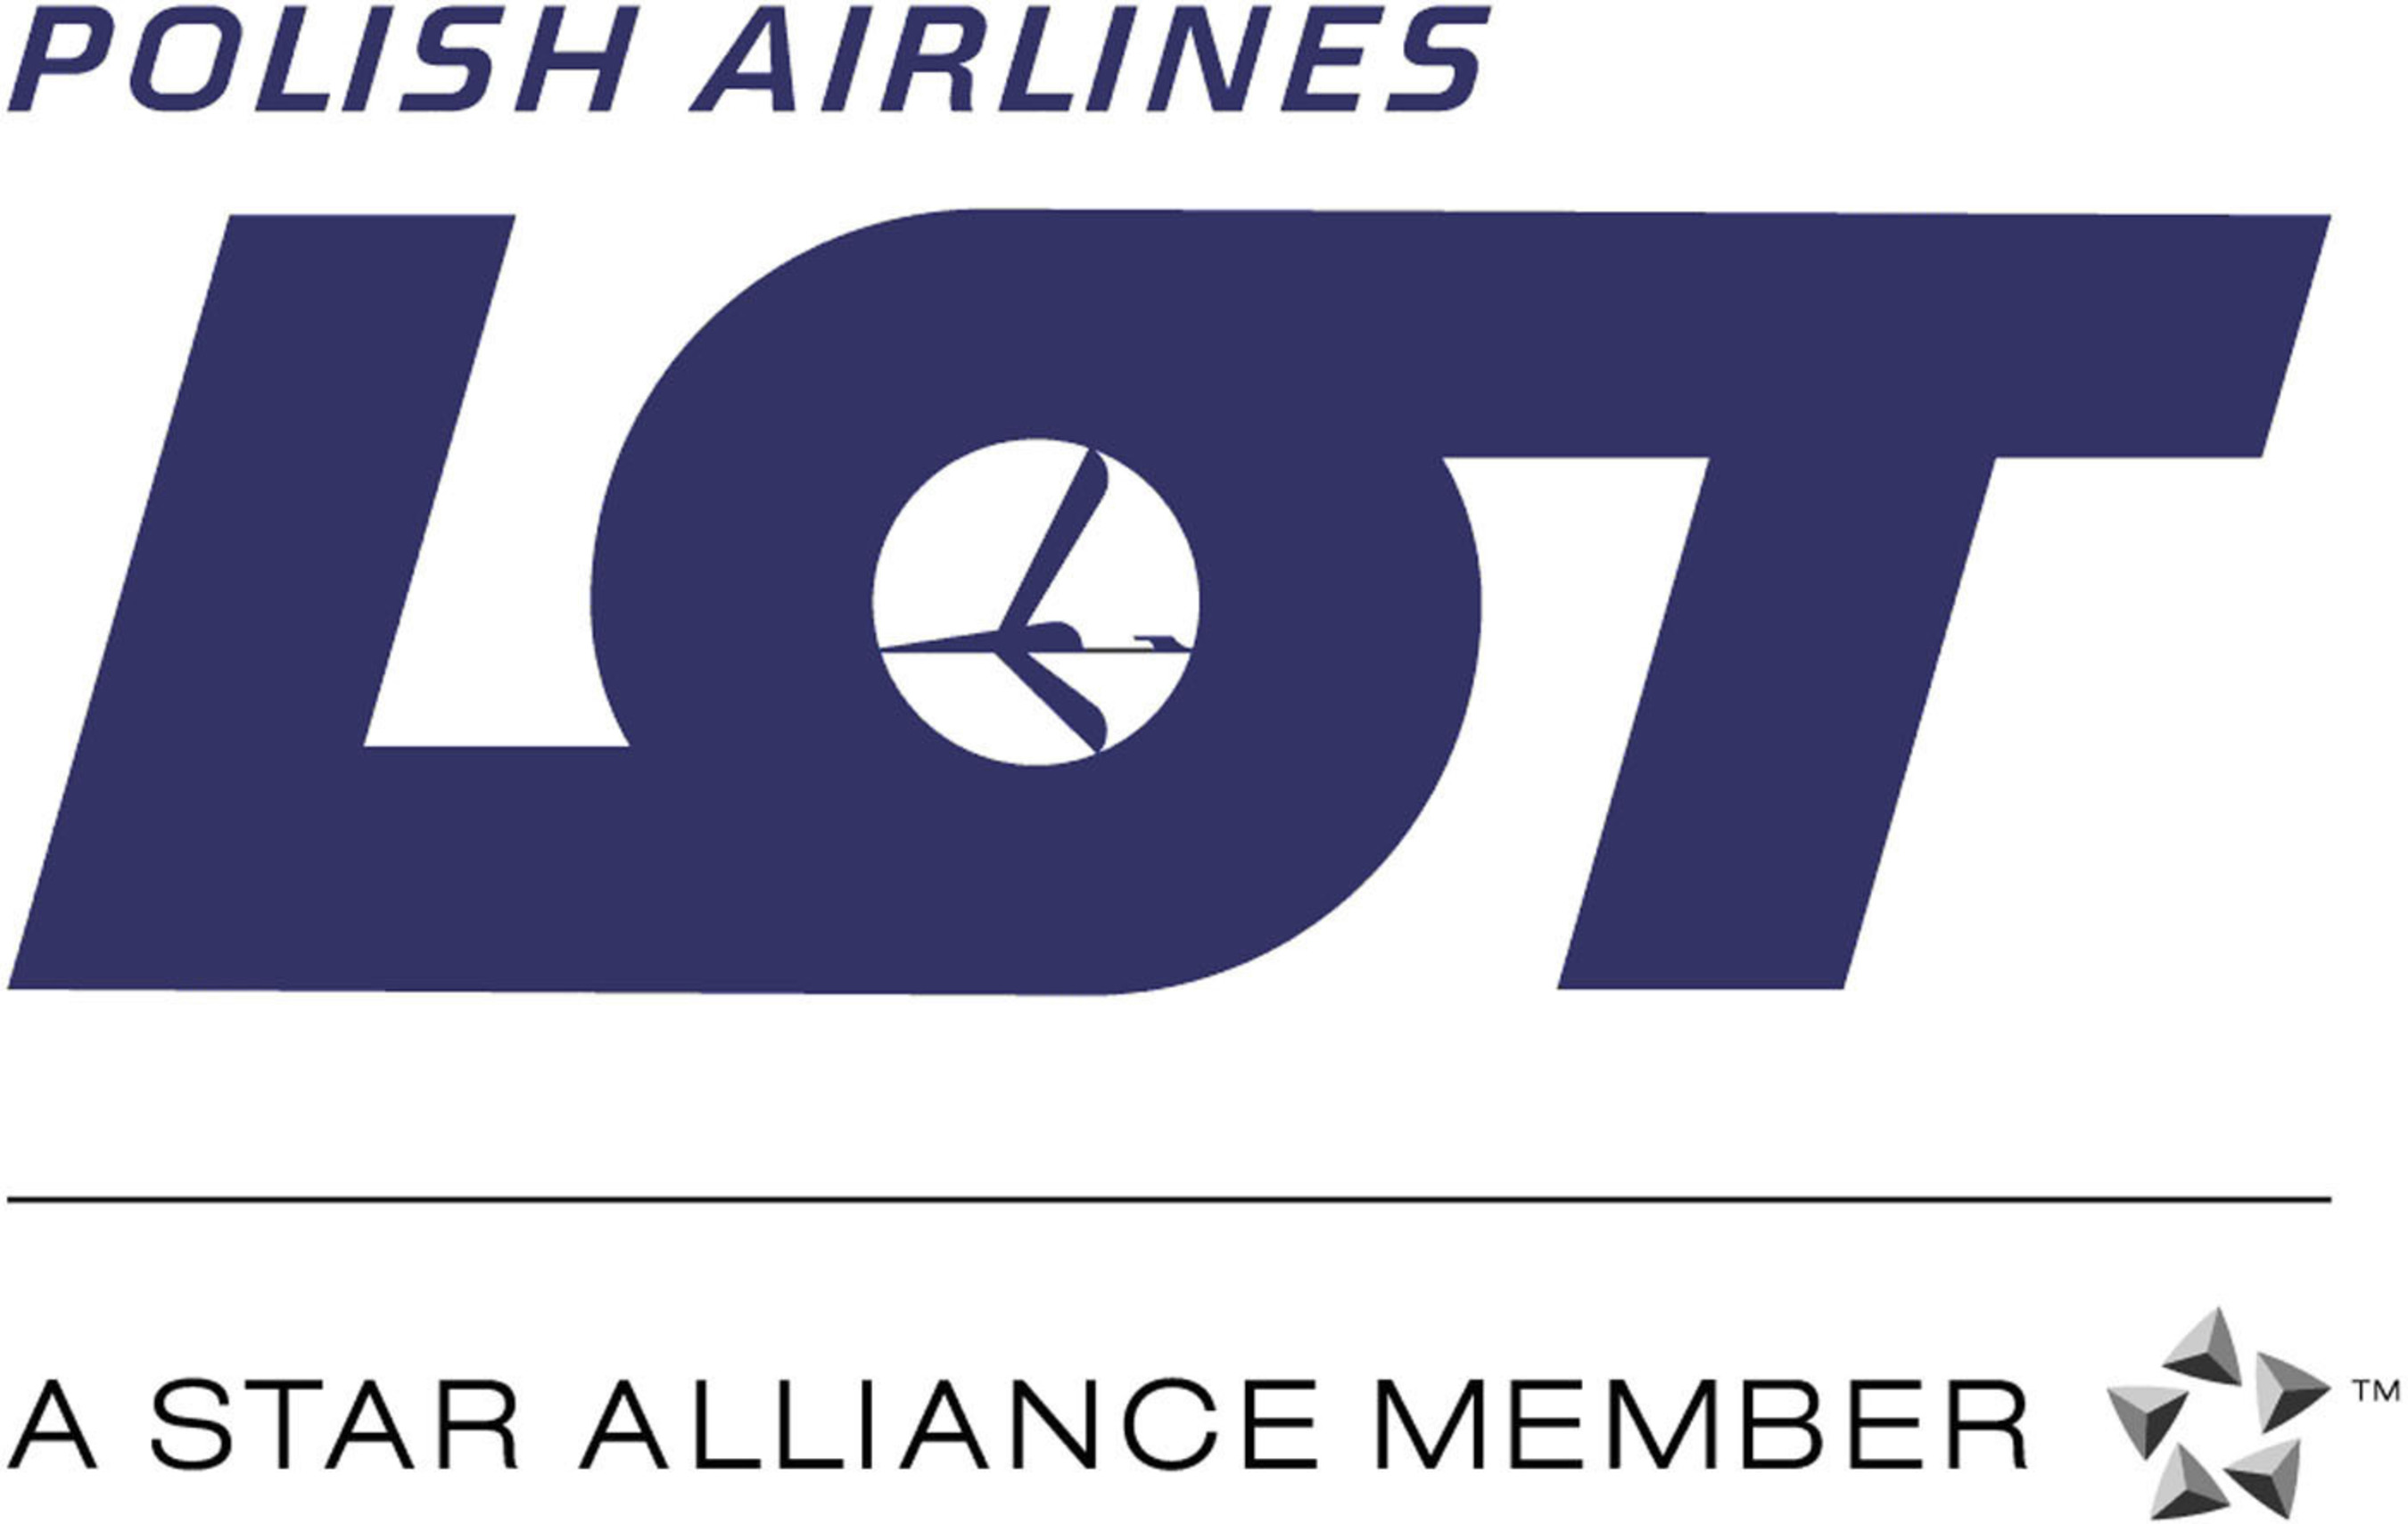 LOT Polish Airlines Logo.